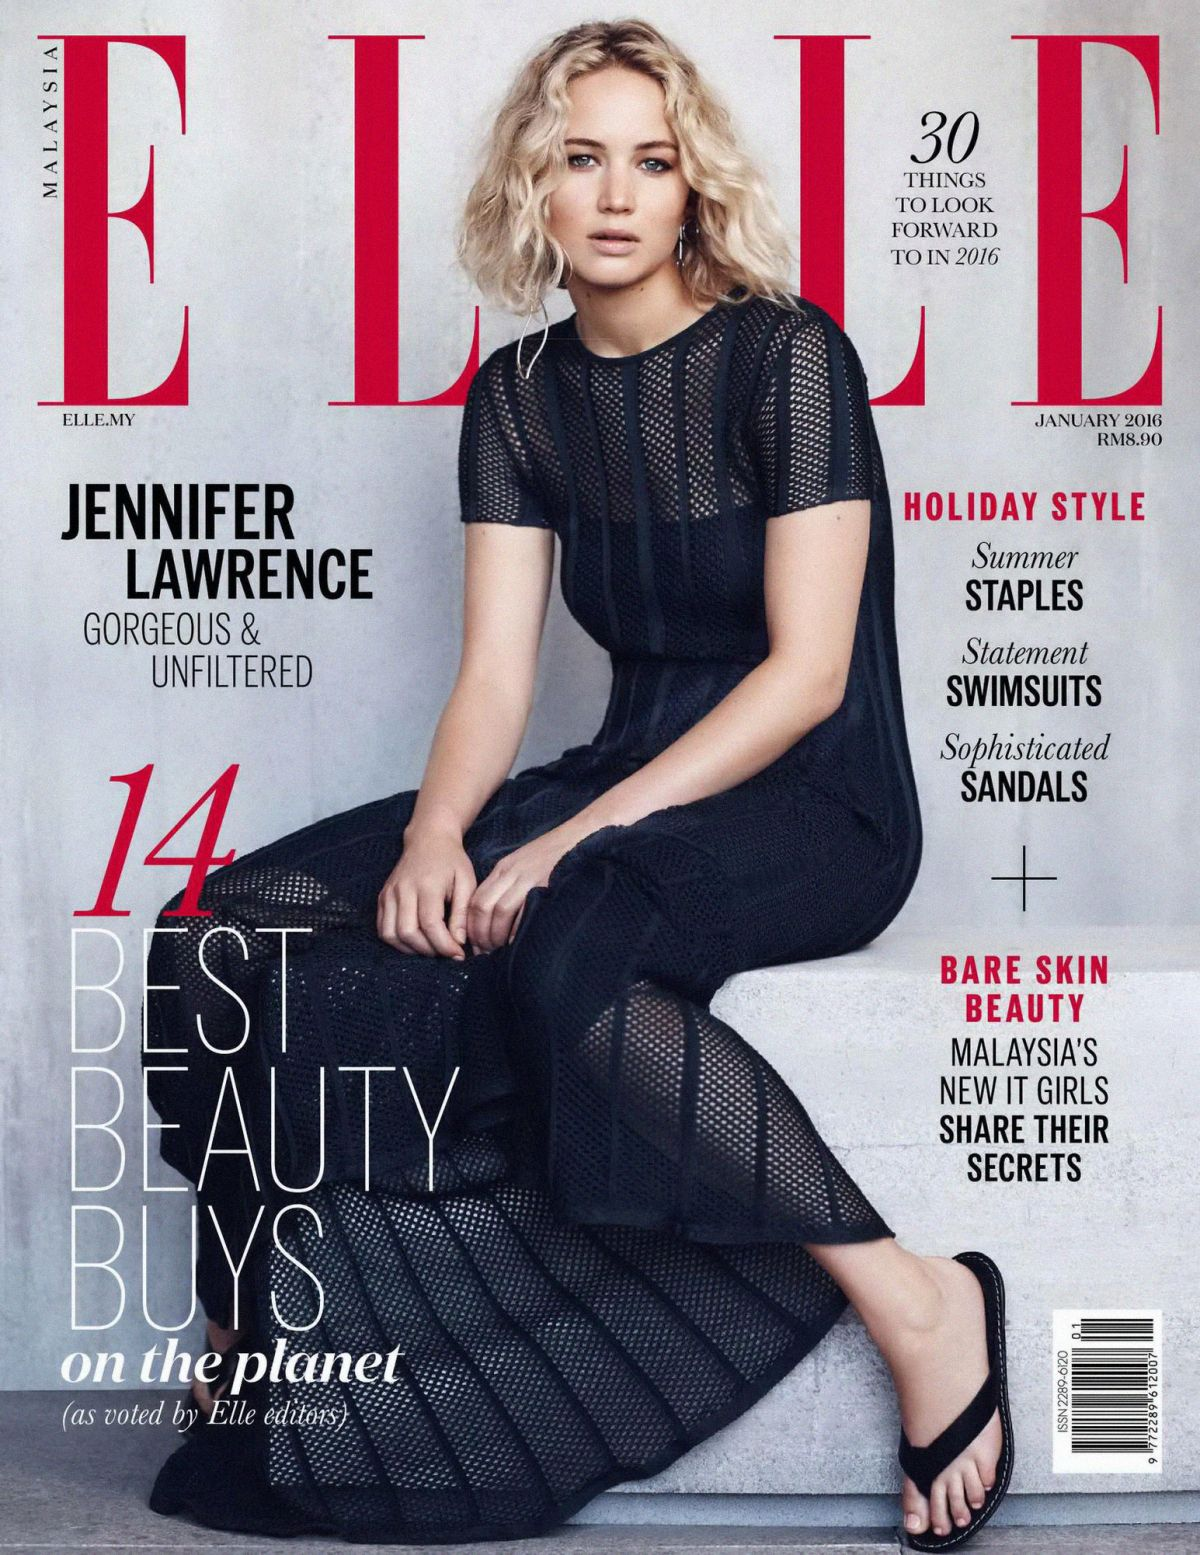 JENNIFER LAWRENCE in Elle  Magazine, Malaysia January 2016 Issue